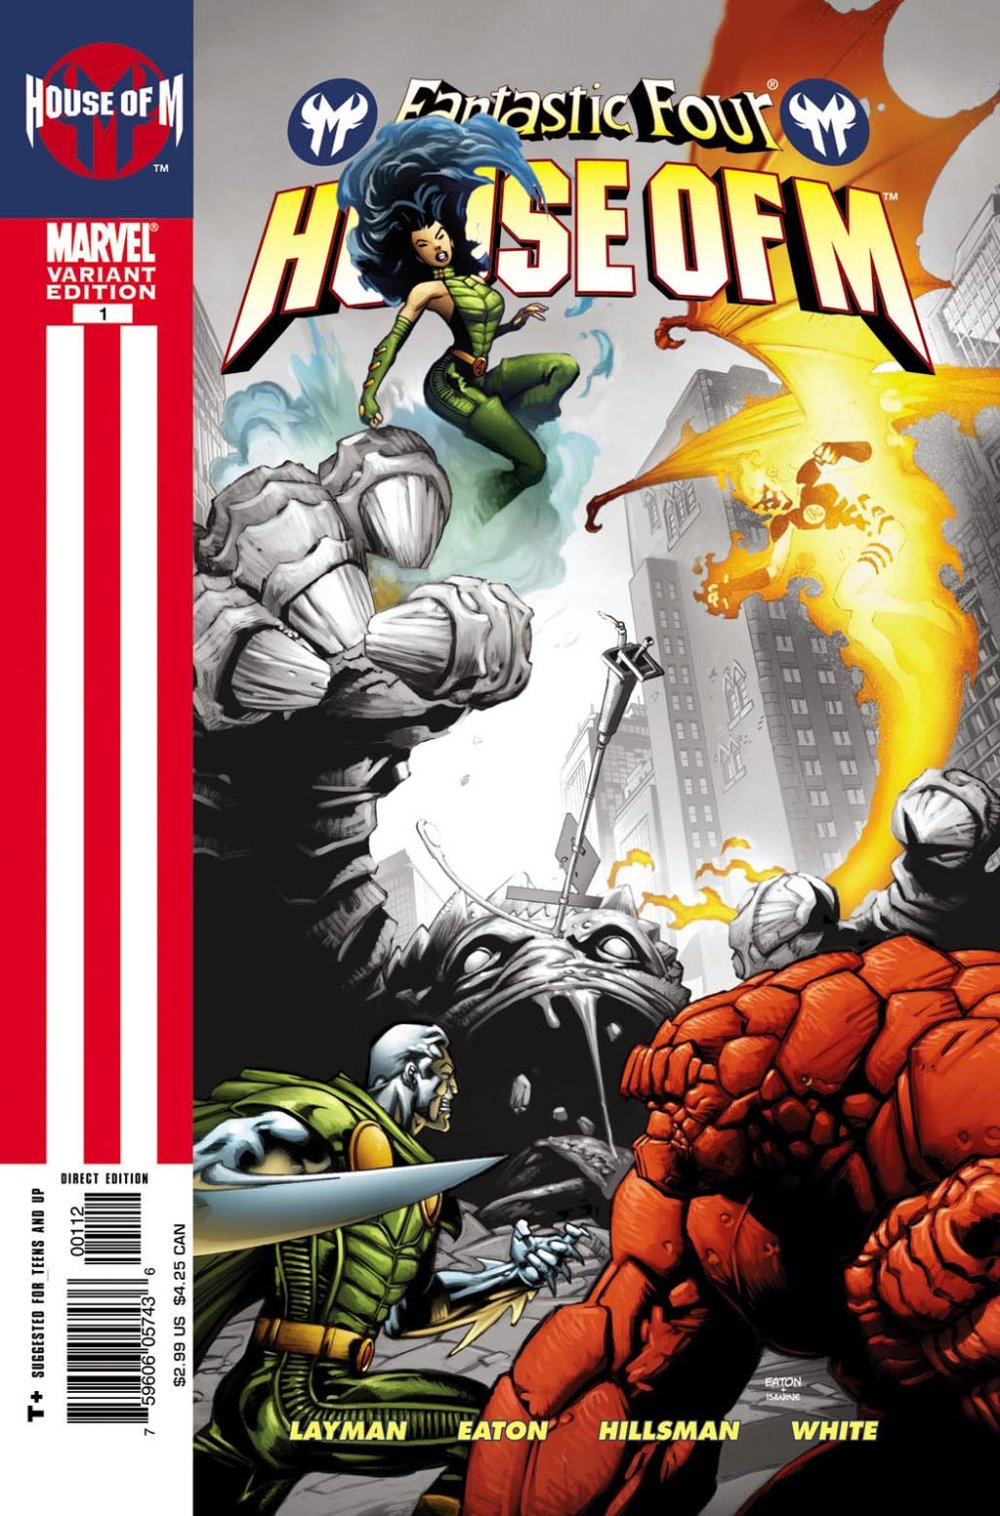 Fantastic Four- House Of M [Marvel] Mini 1 0001b.jpg